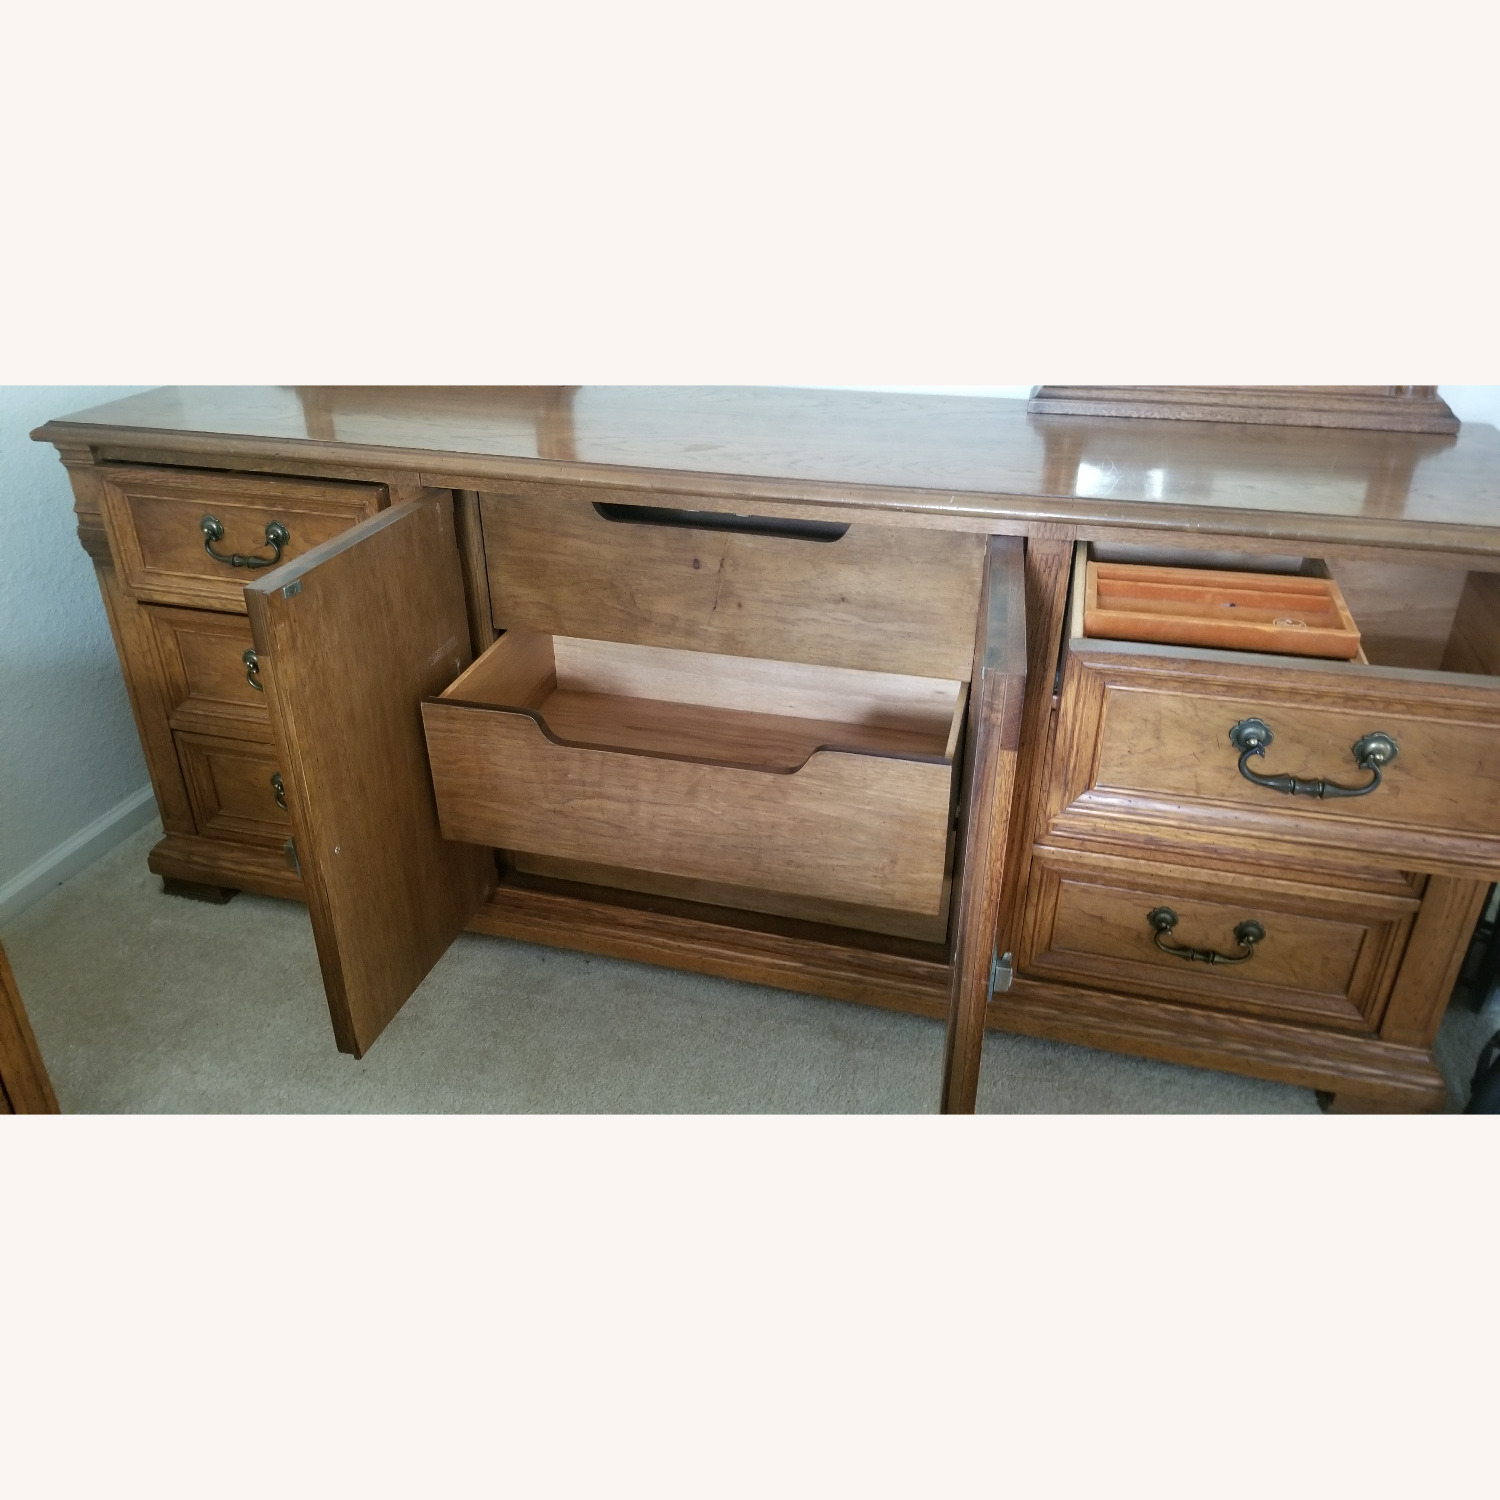 Vintage Drexel Dresser with two Large Mirrors - image-6